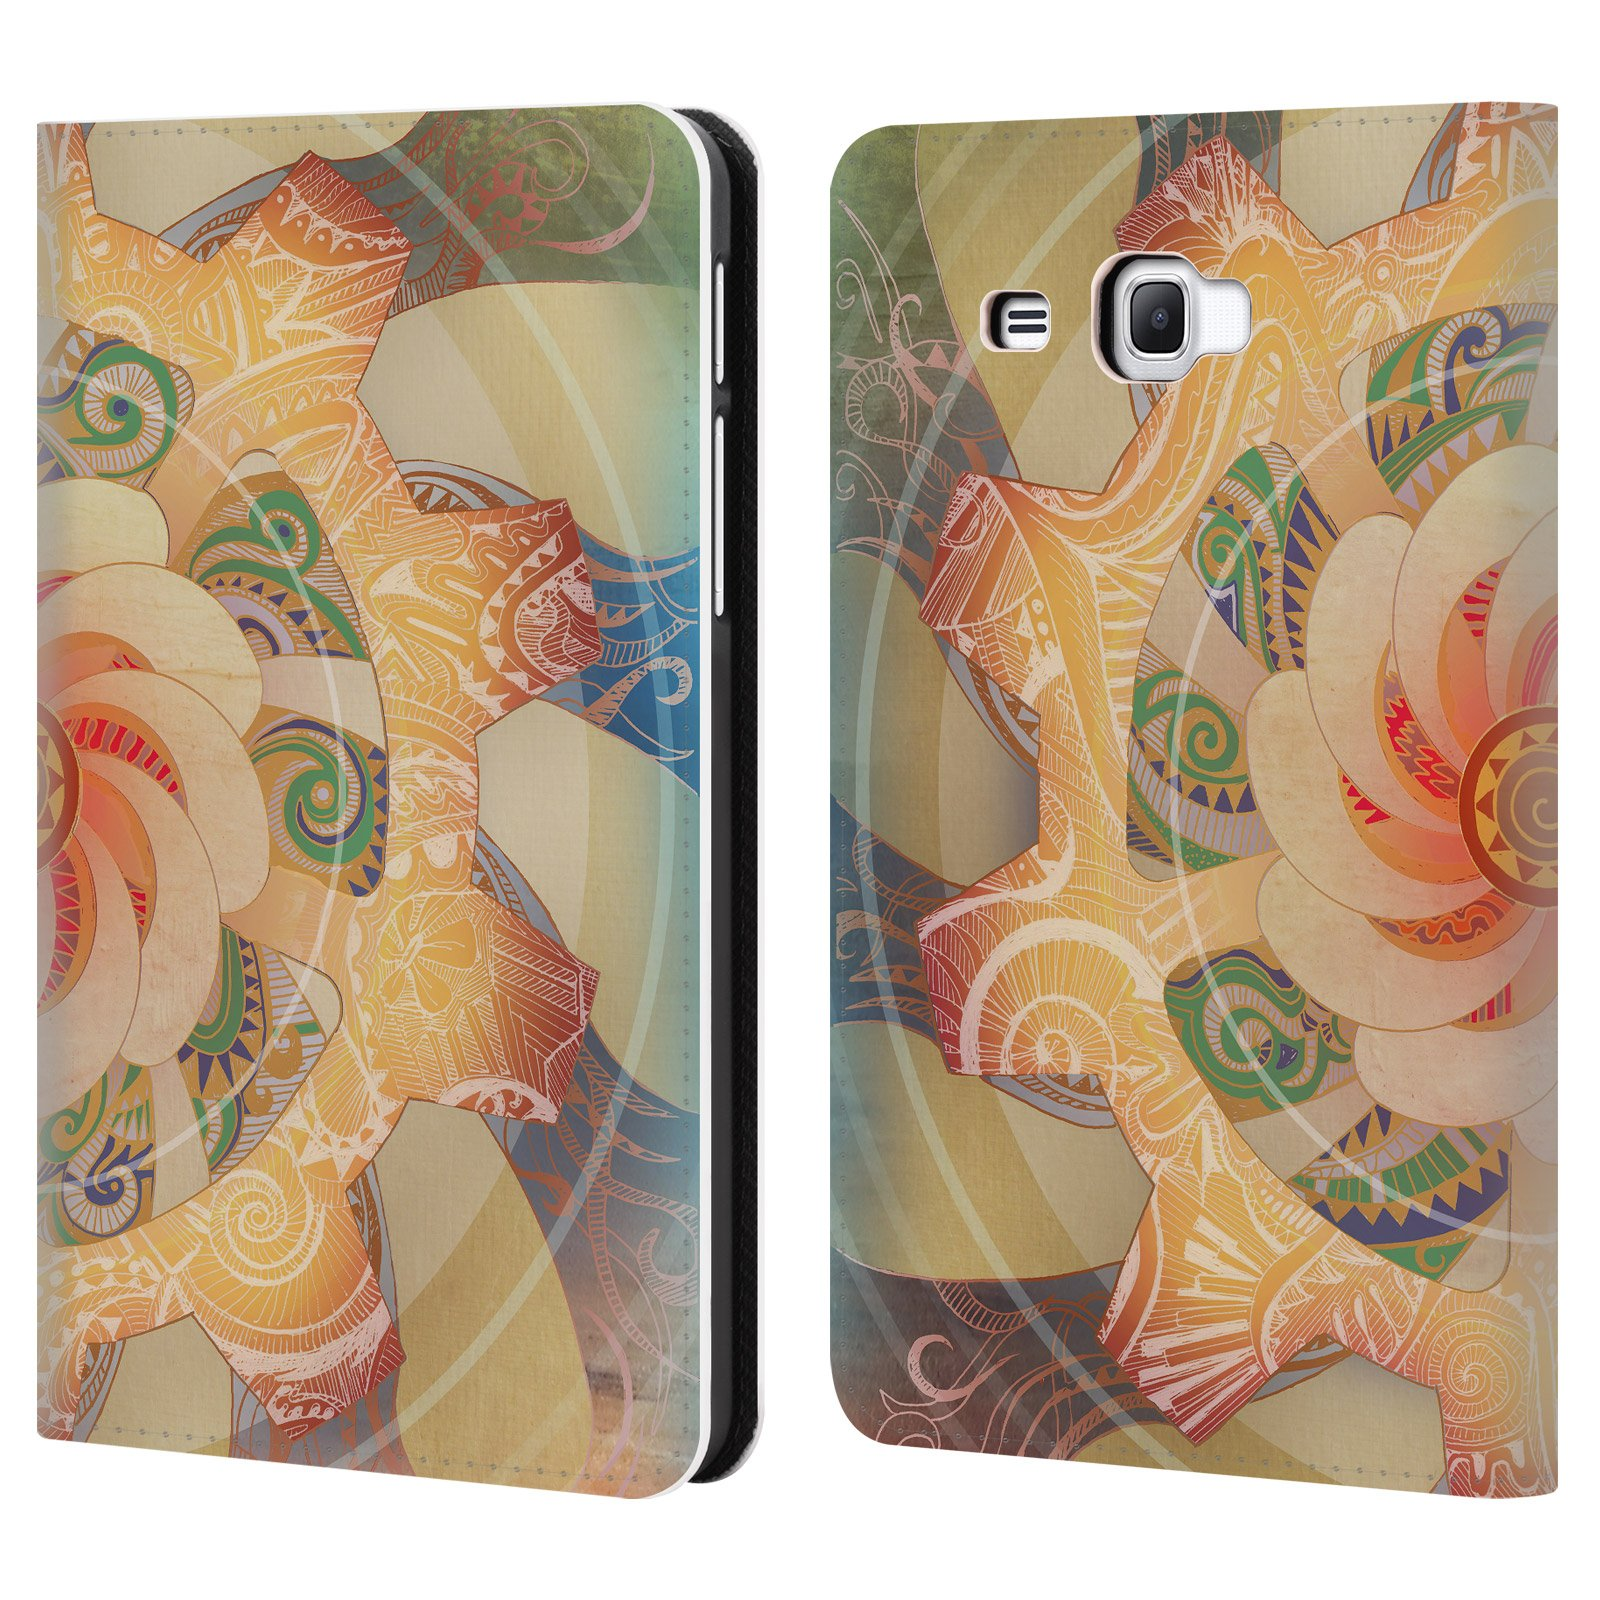 Official Brenda Erickson Solar Plexis Chakras Leather Book Wallet Case Cover For Samsung Galaxy Tab A 7.0 (2016)